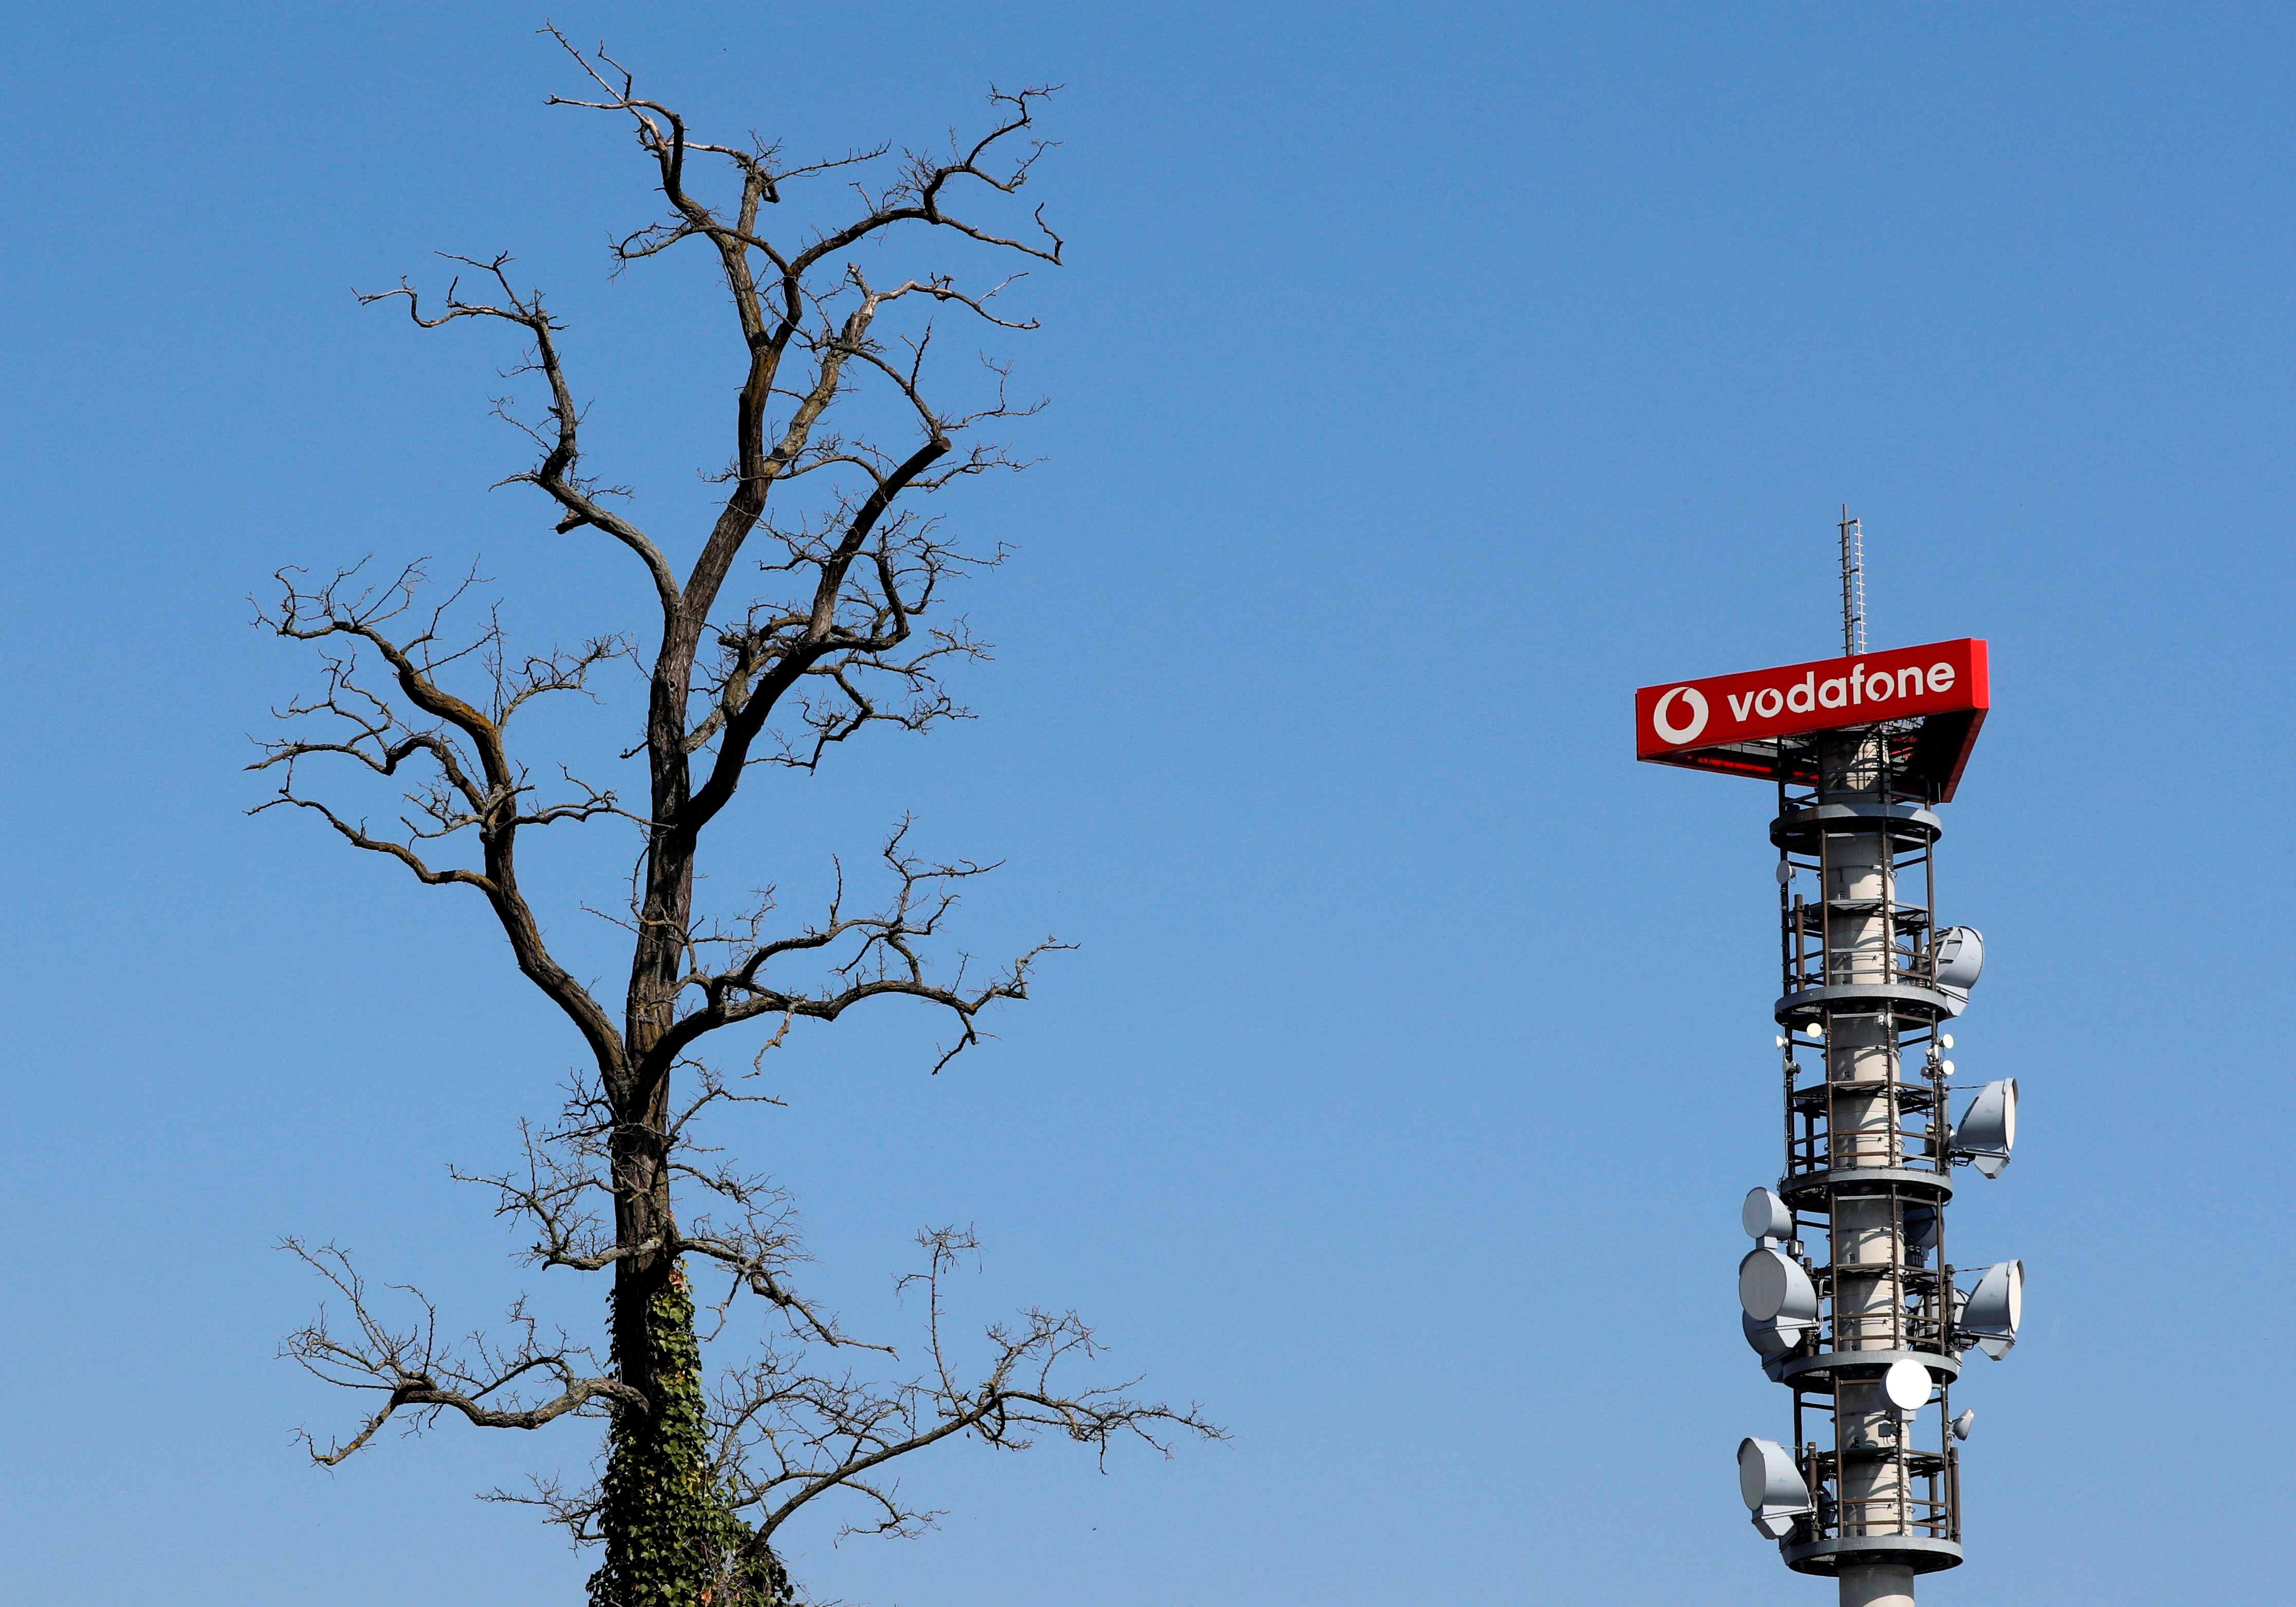 Different types of 4G, 5G and data radio relay antennas for mobile phone networks are pictured on a relay mast operated by Vodafone in Berlin, Germany April 8, 2019.  REUTERS/Fabrizio Bensch